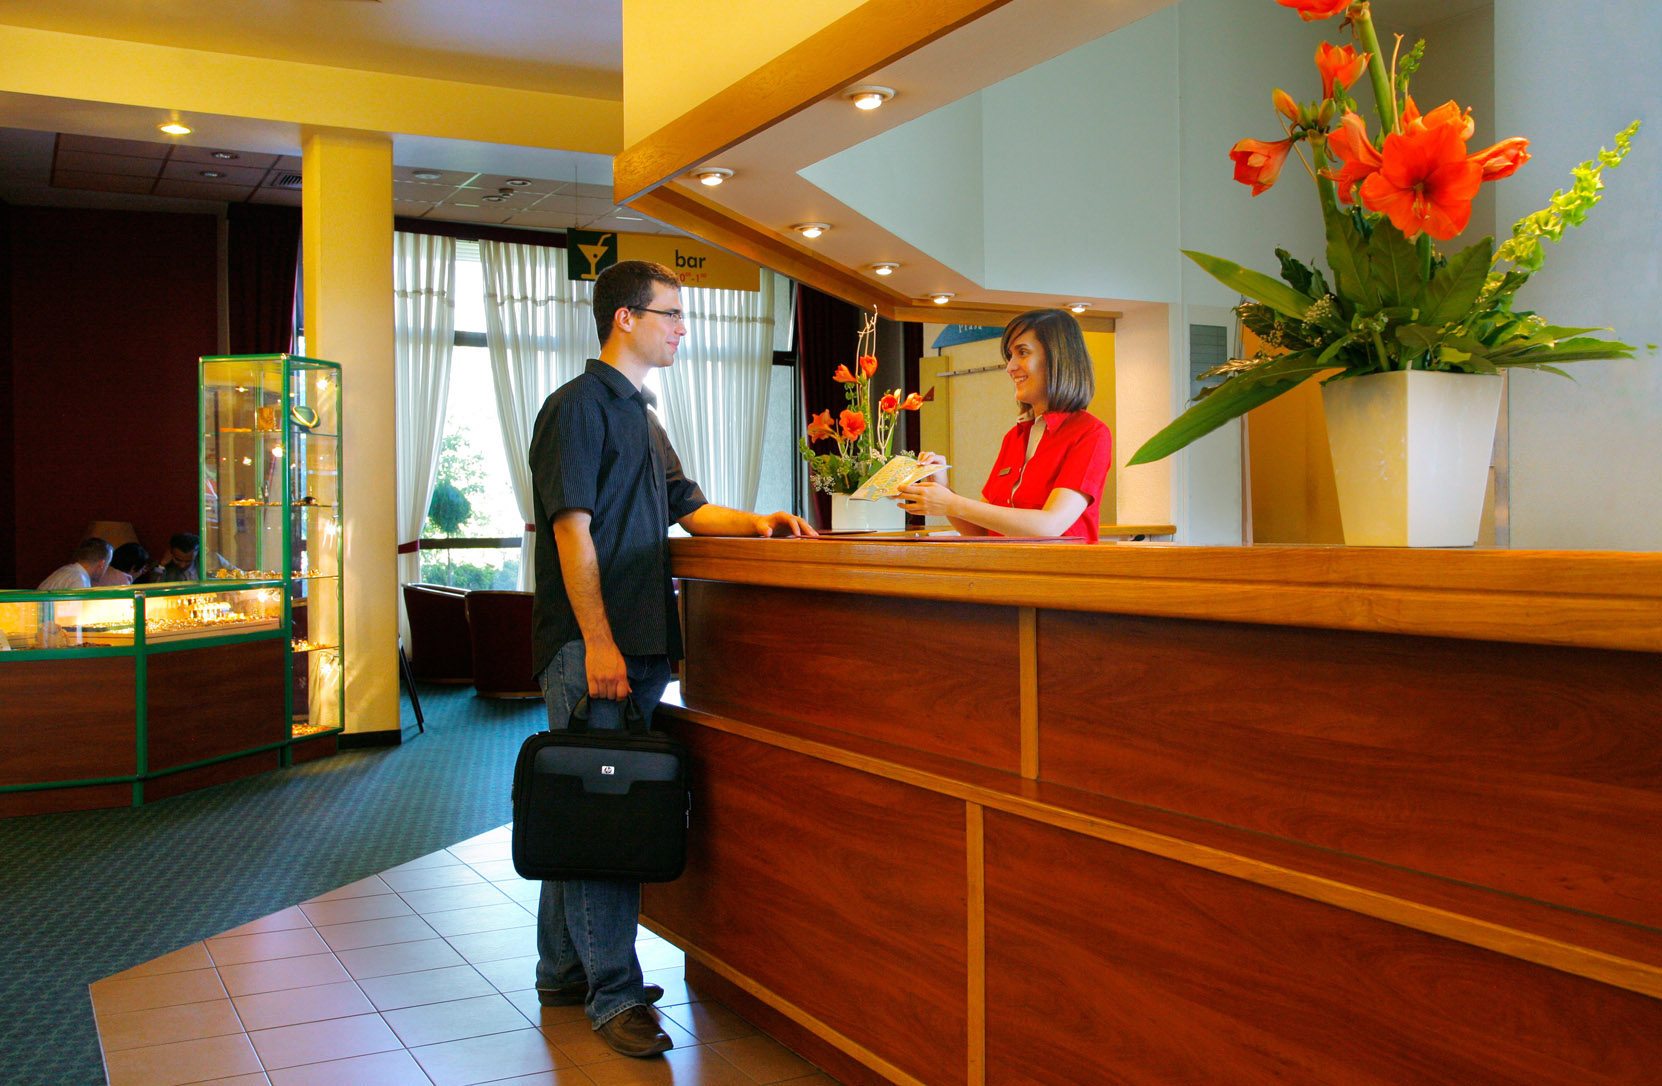 hotel front desk 22516 hotel front desk jobs available see salaries, compare reviews, easily apply, and get hired new hotel front desk careers are added daily on simplyhiredcom the low-stress way to find your next hotel front desk job opportunity is on simply hired there are over 22516 hotel front desk careers waiting for you to apply.